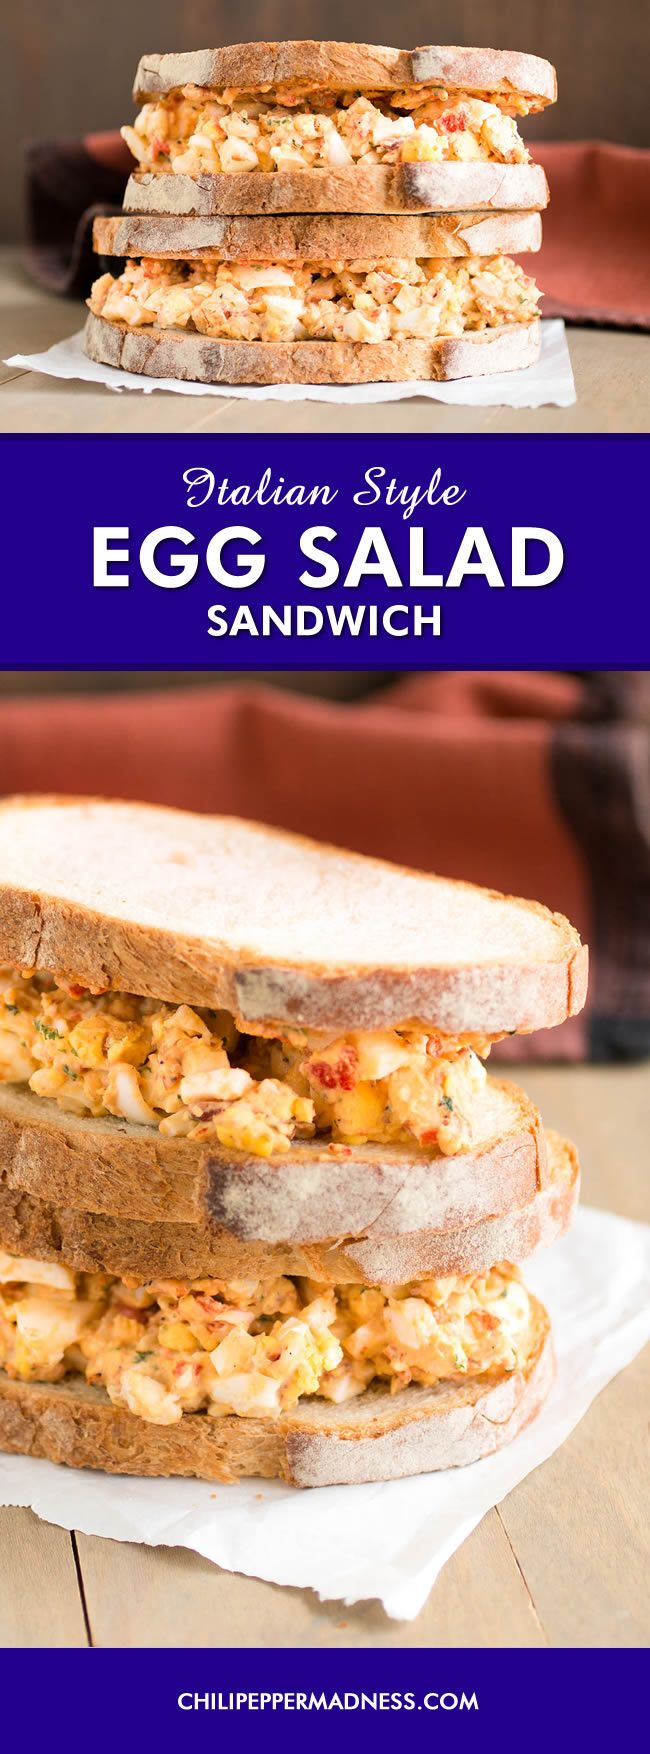 Italian Style Egg Salad Sandwich - An egg salad sandwich recipe with an Italian twist, with plenty of hard boiled eggs, mayo, Italian chili pepper, bacon, basil, lightly toasted almonds and more. It's a quick and easy lunch or dinner.